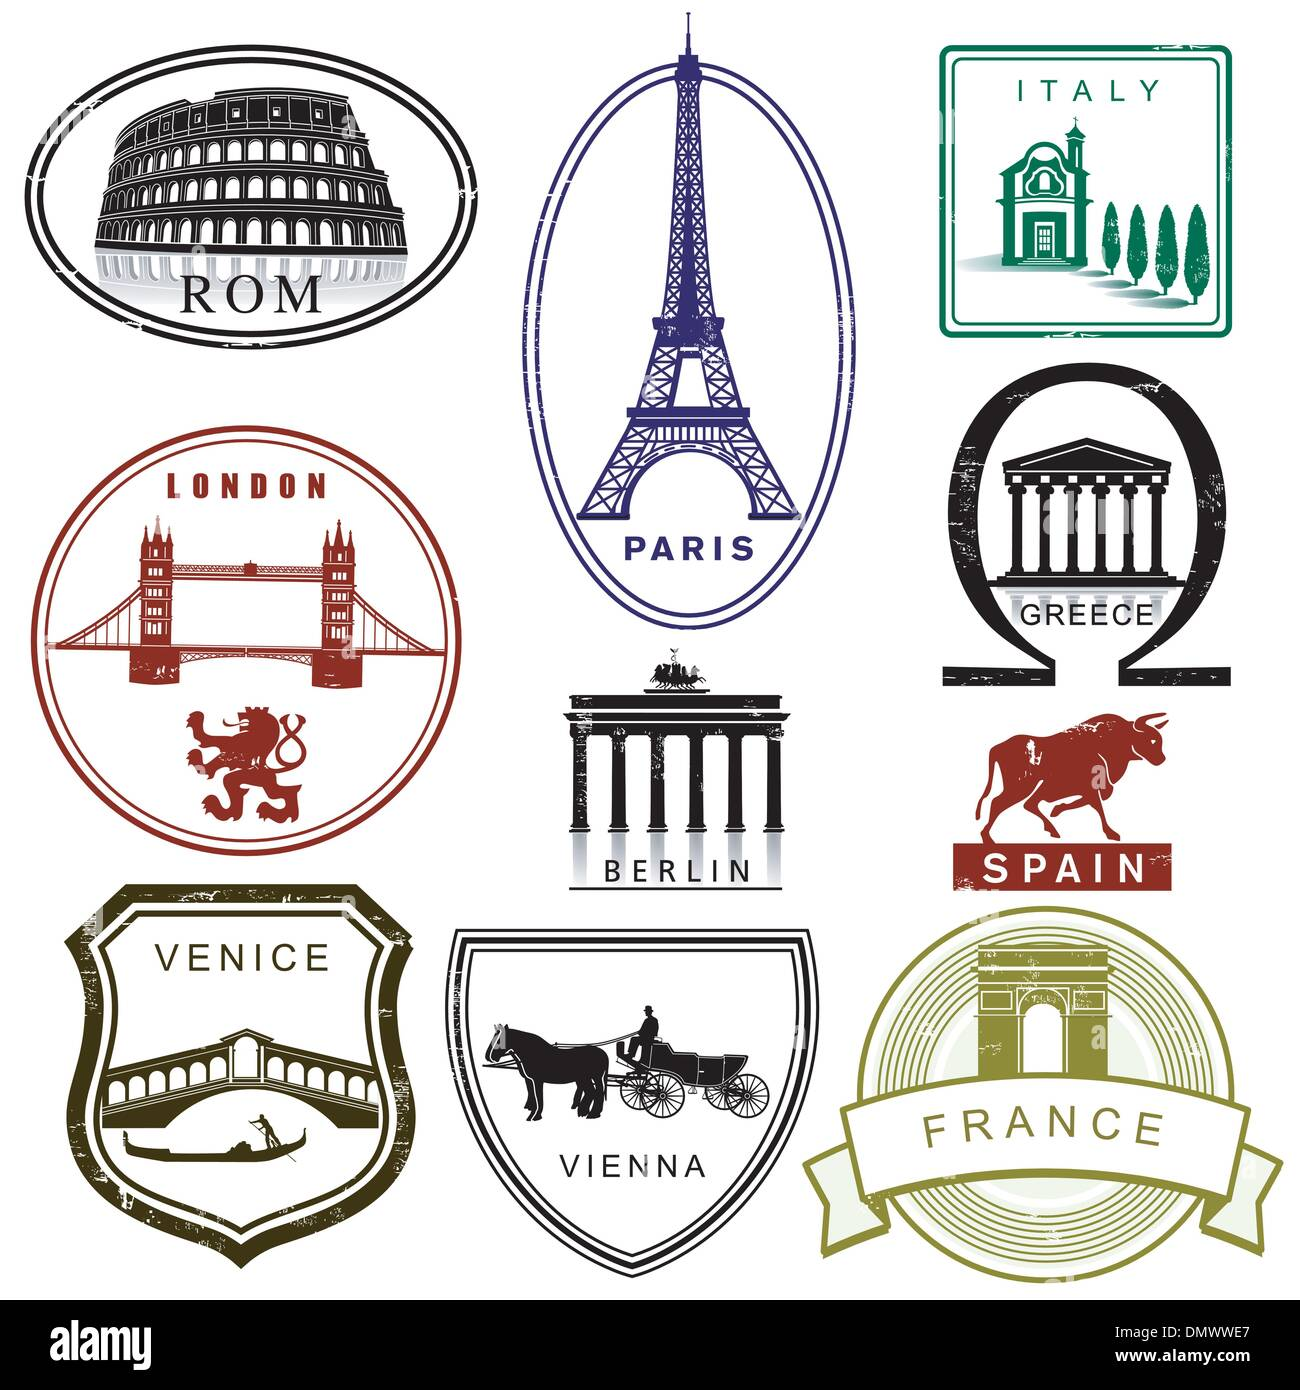 Passport Stamps Europe Stock Photos